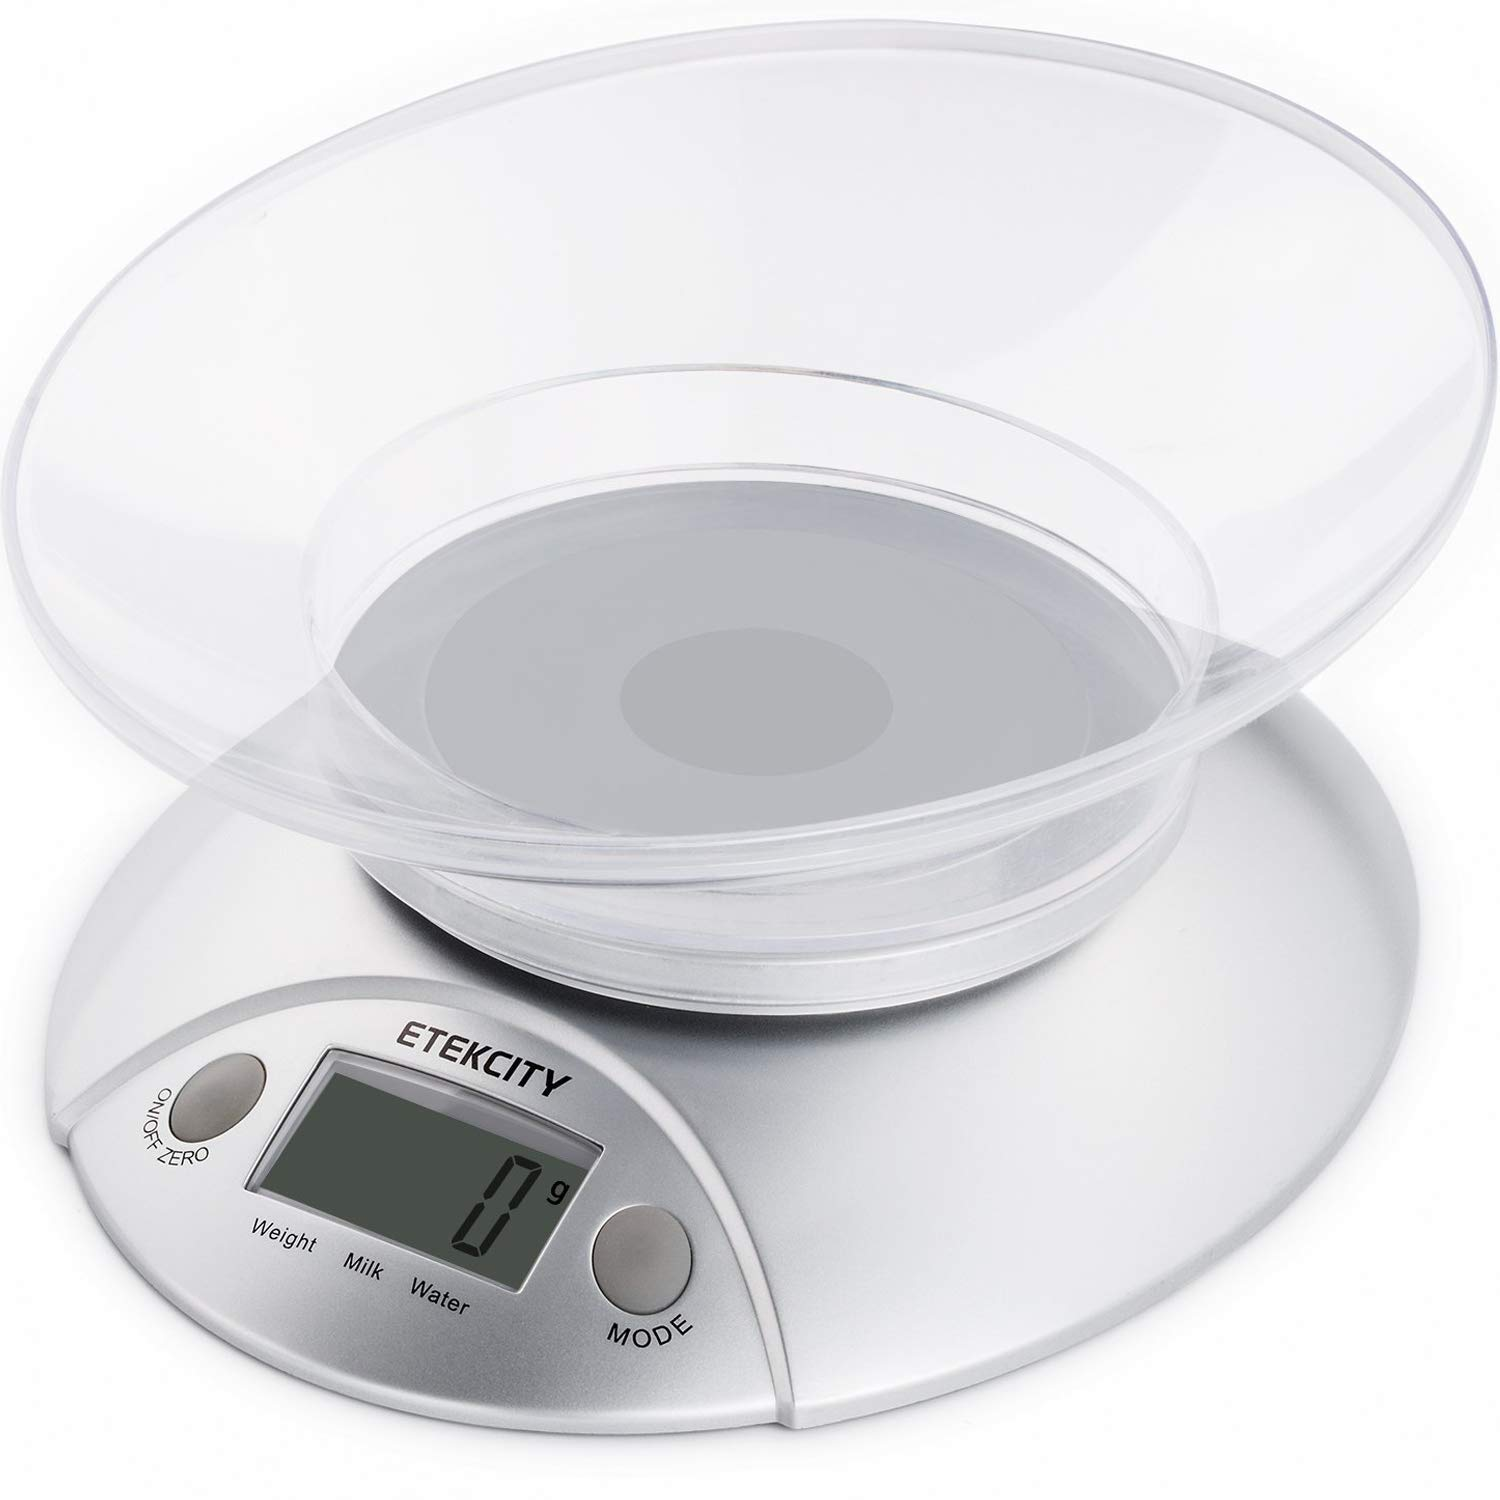 Etekcity digital kitchen food scale and multifunction weight scale